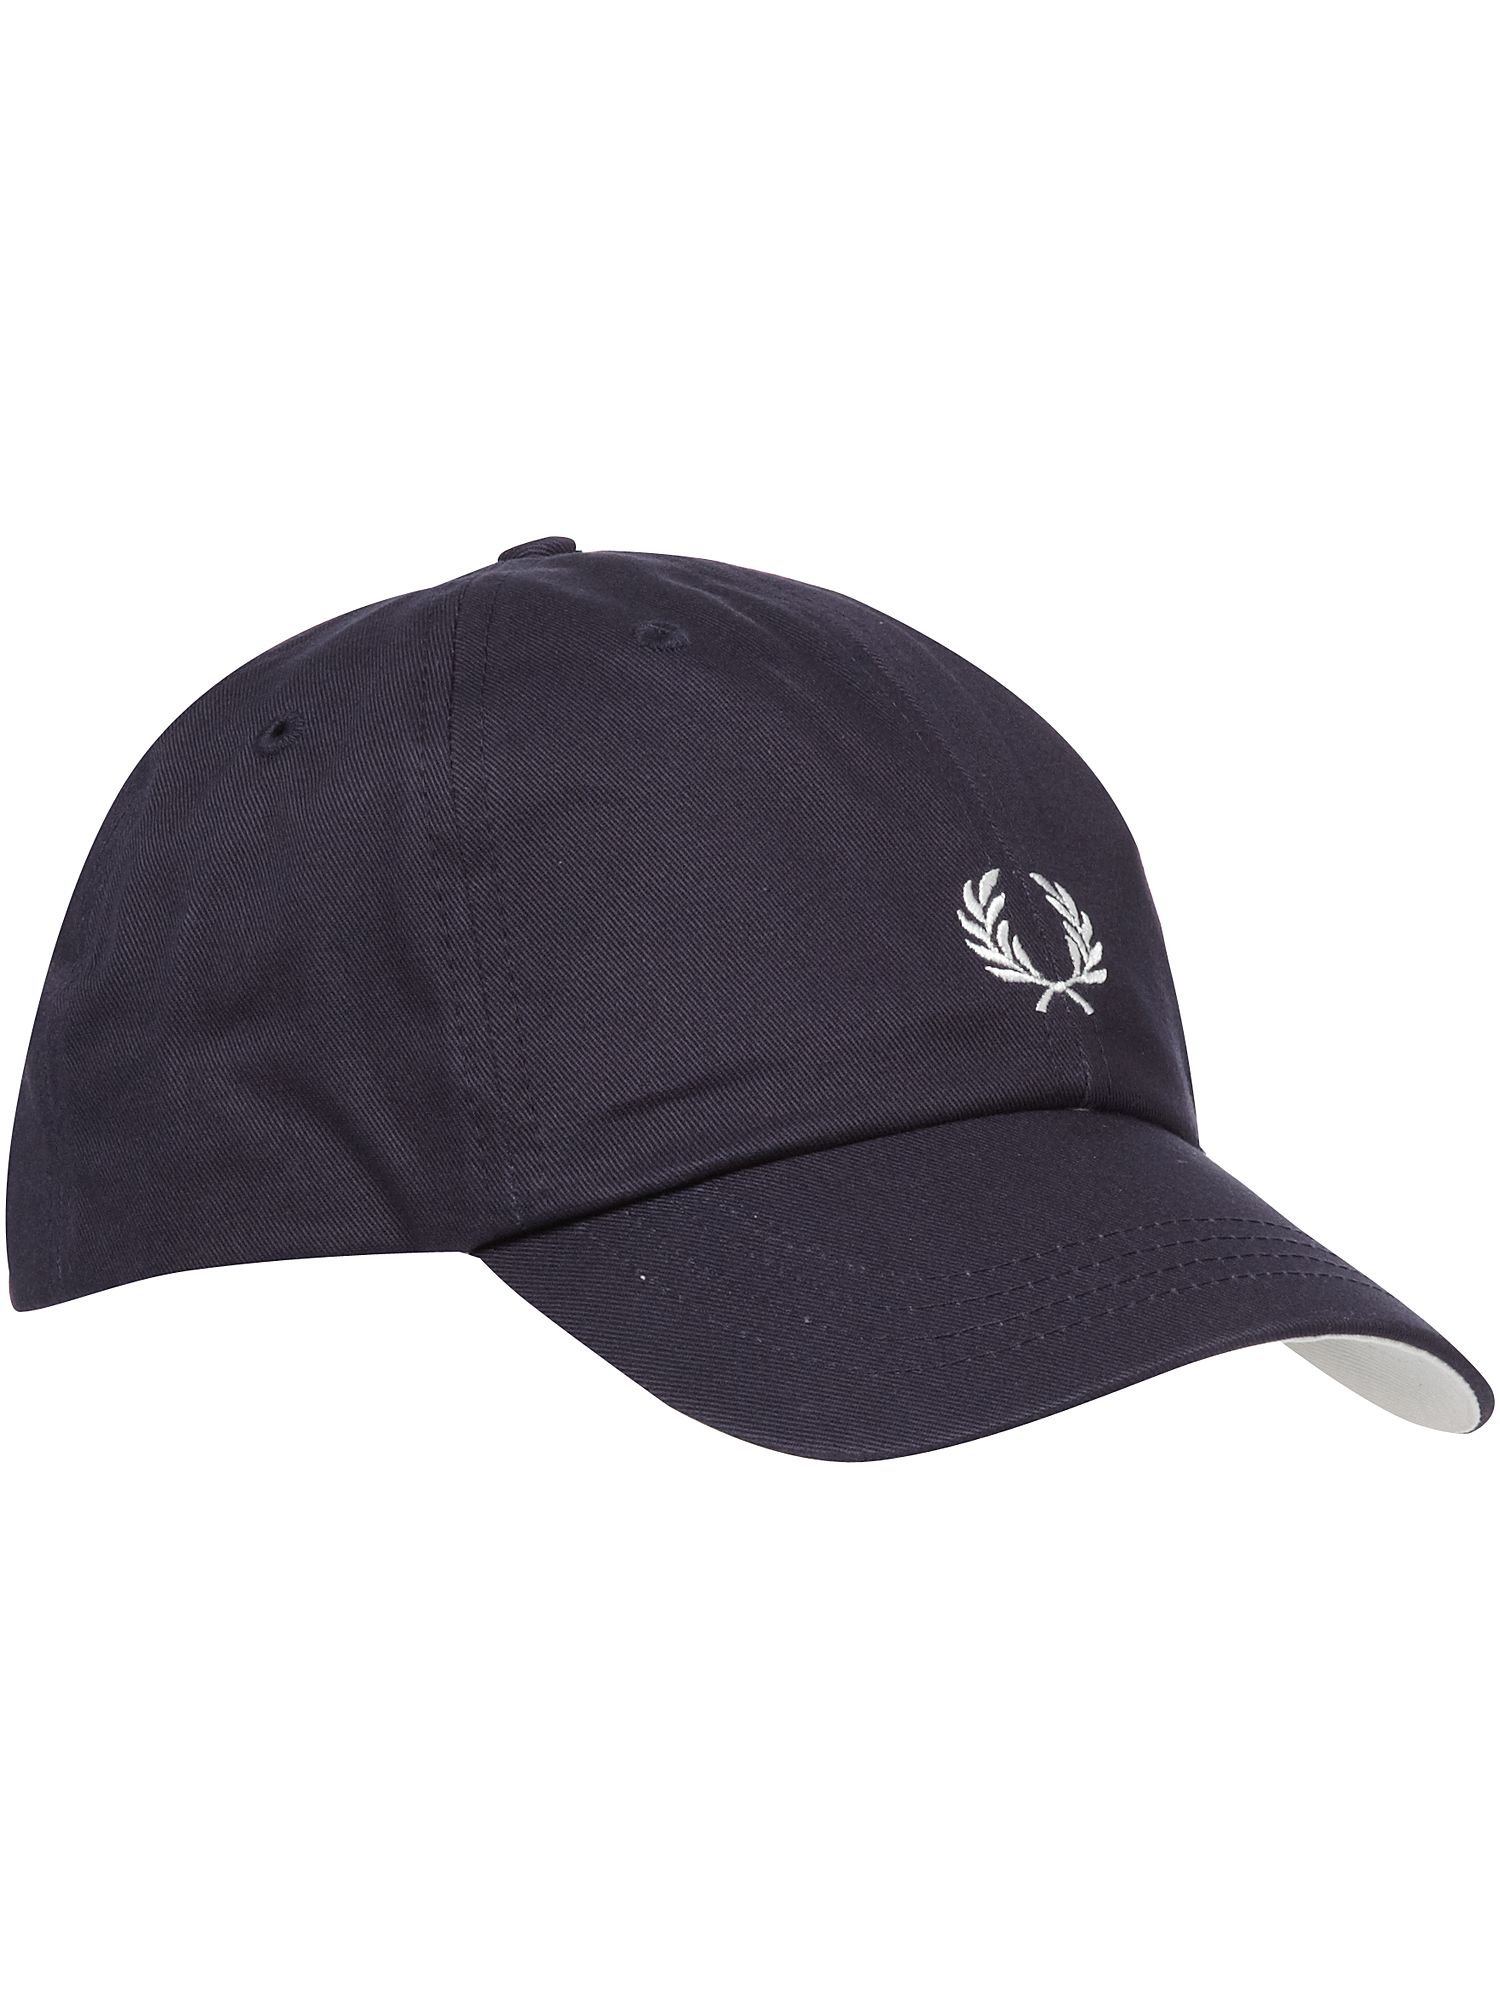 fred perry baseball caps reviews. Black Bedroom Furniture Sets. Home Design Ideas